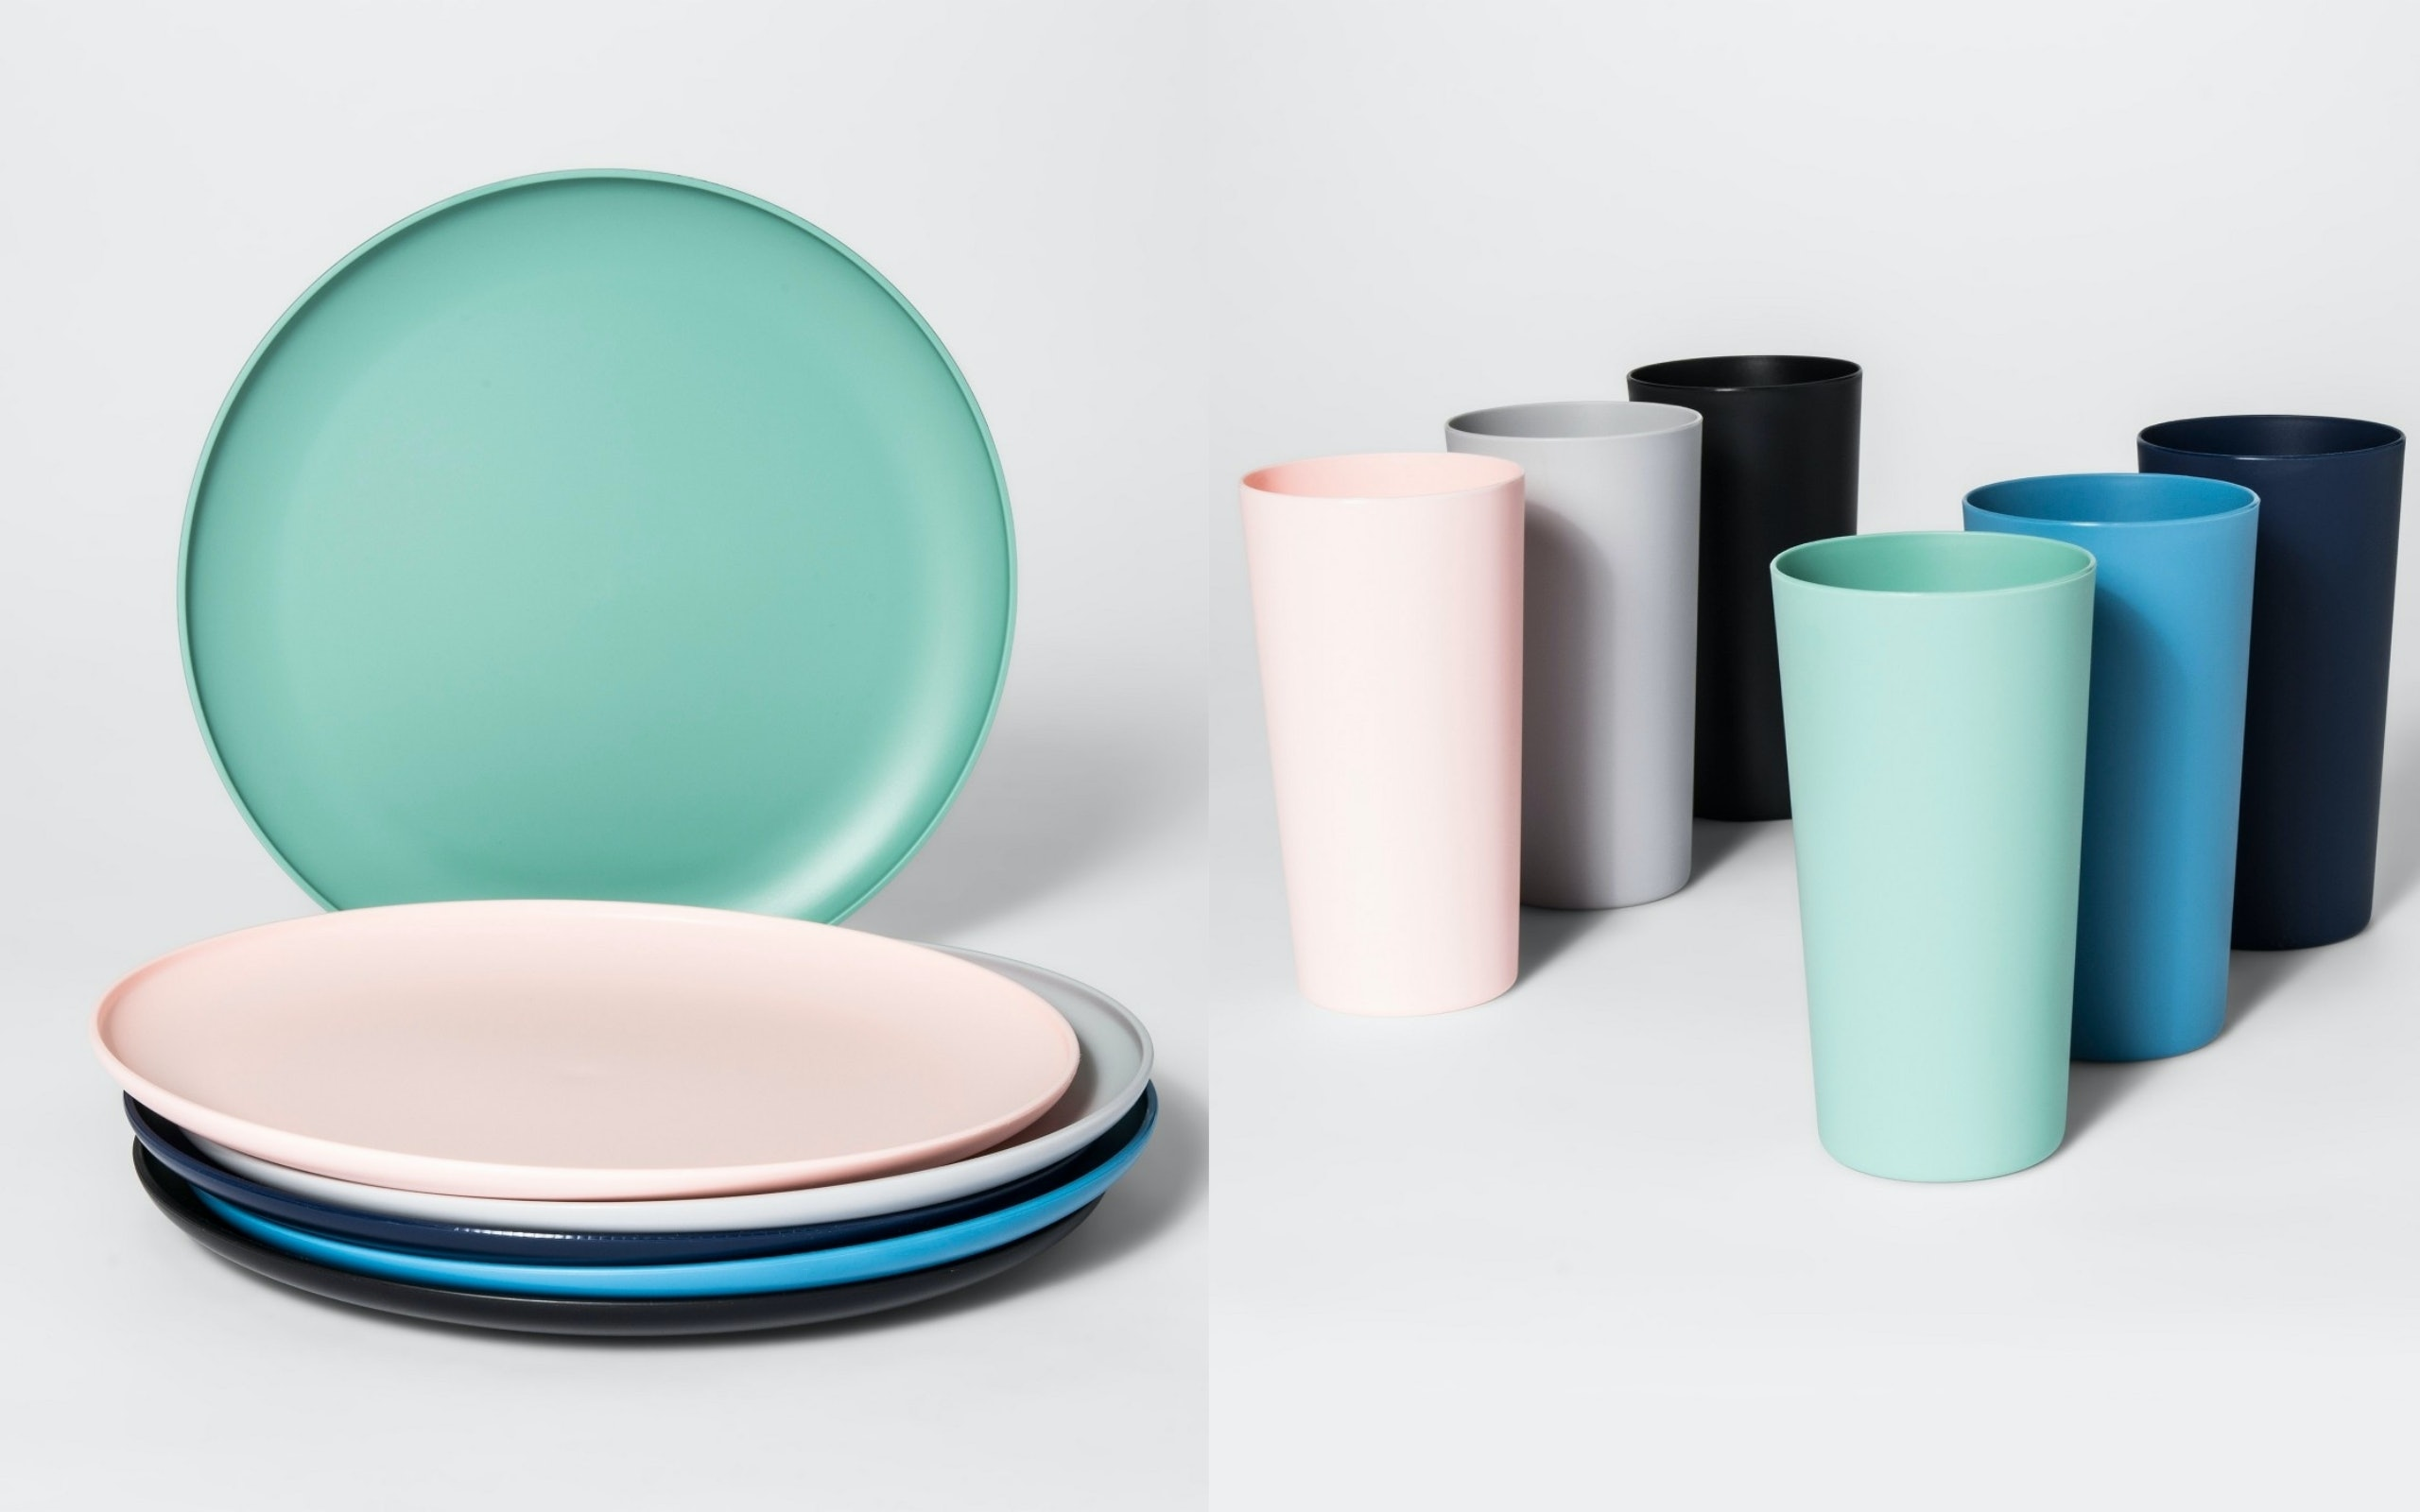 Genial Targetu0027s Best Selling Kitchen Items Are All Gorgeous Pastel ...